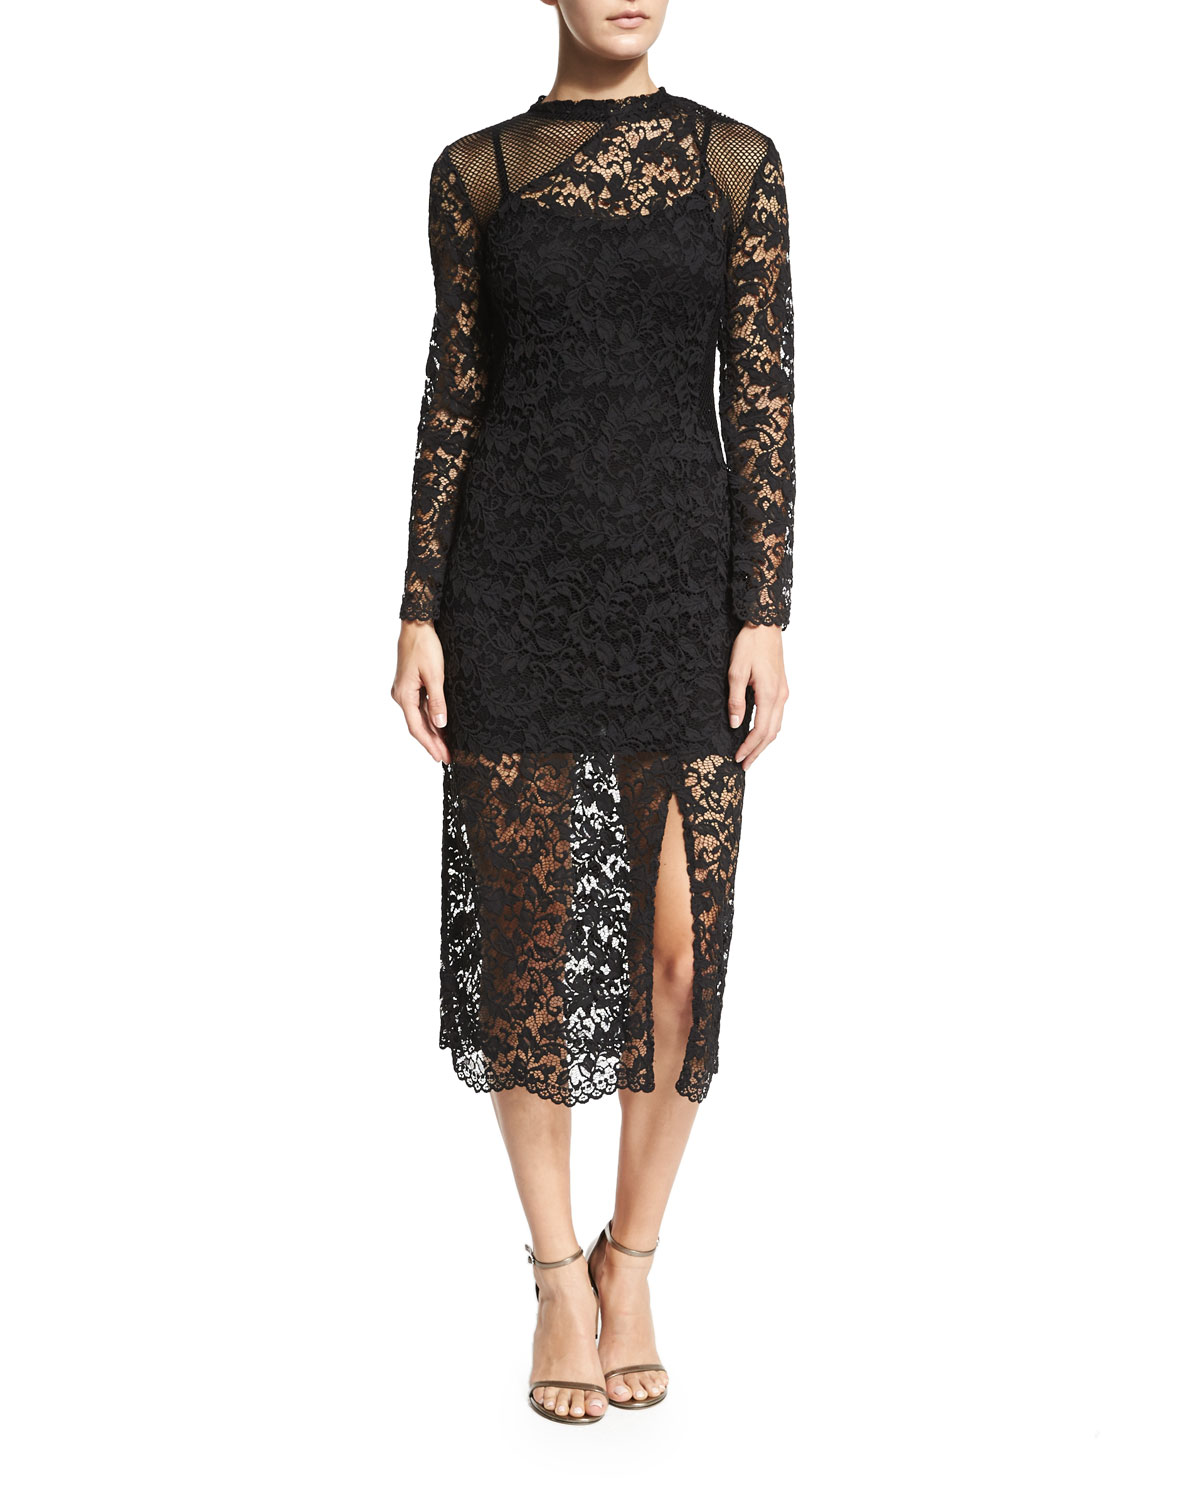 Tilly Long-Sleeve Lace Dress, Black